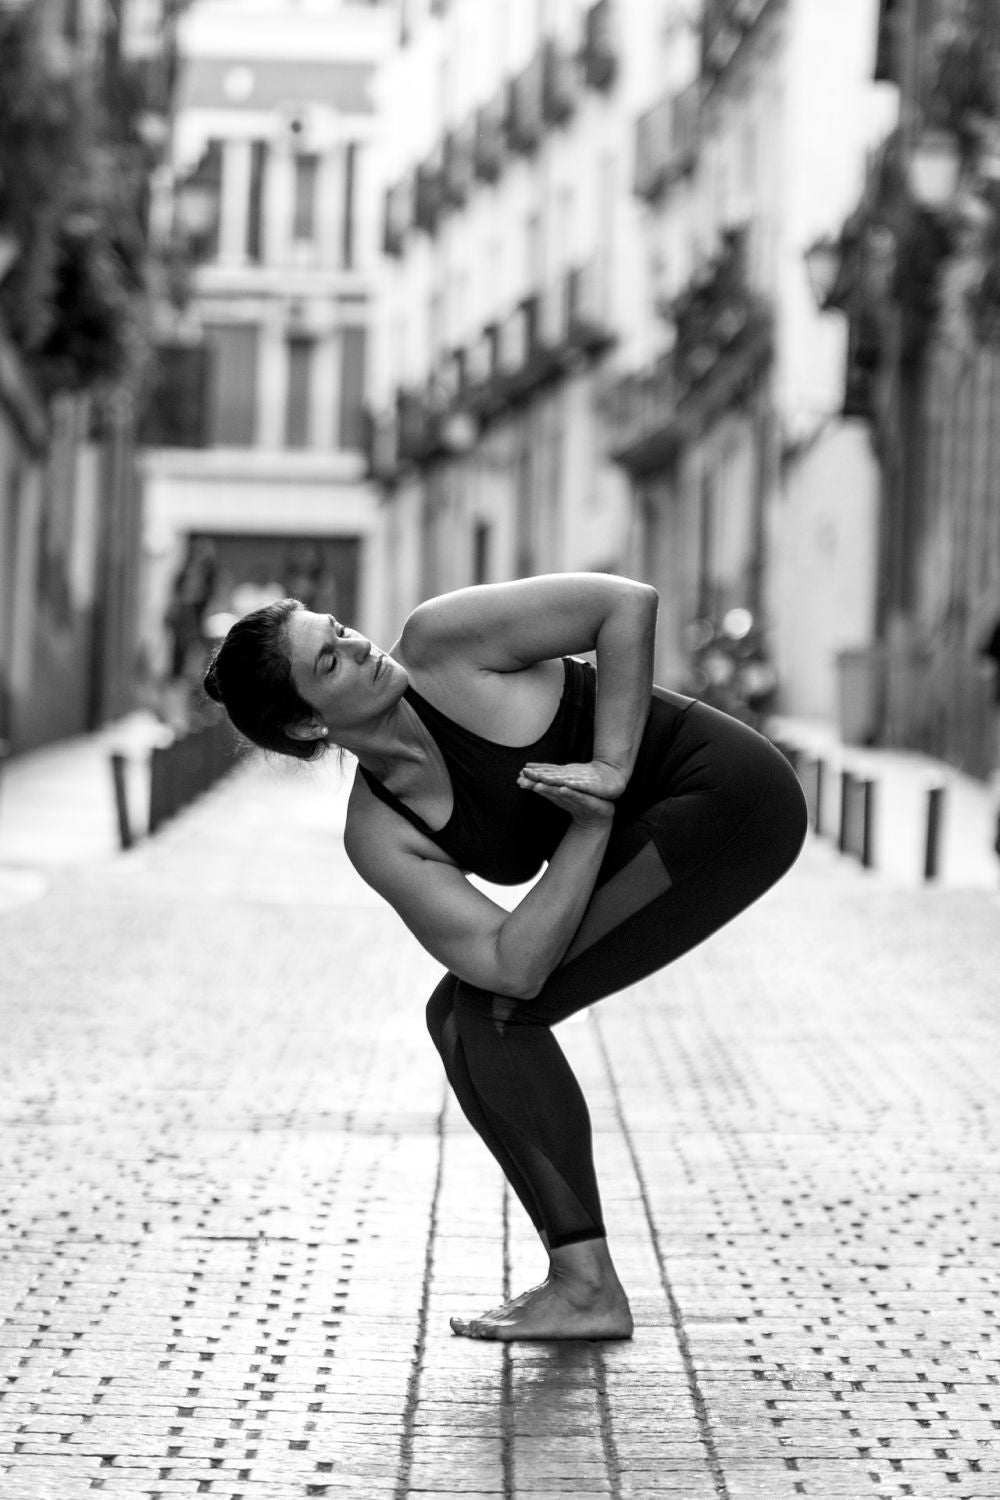 how often do yoga habits street